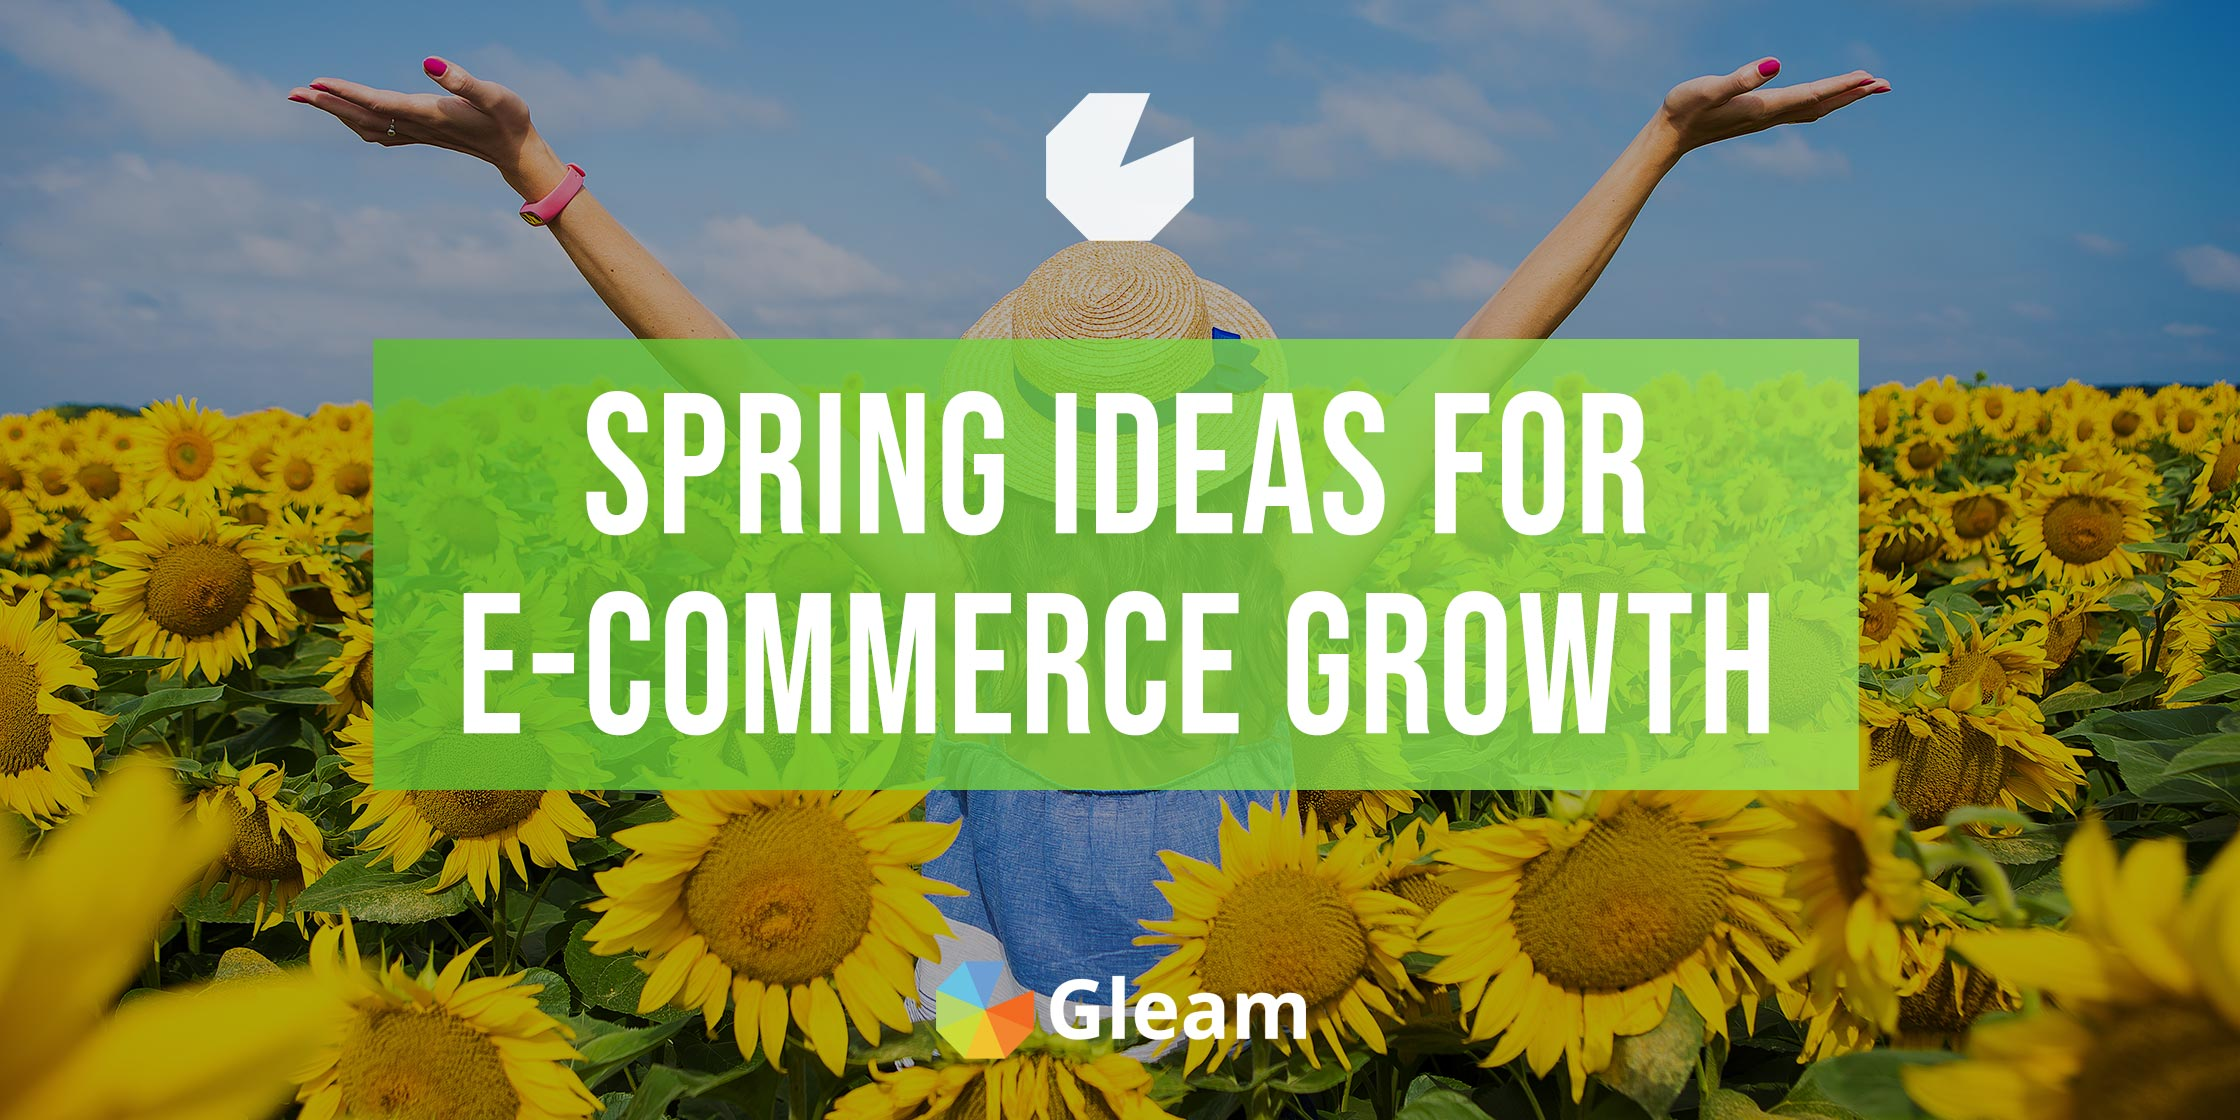 How to Grow Your Online Store This Spring With Gleam